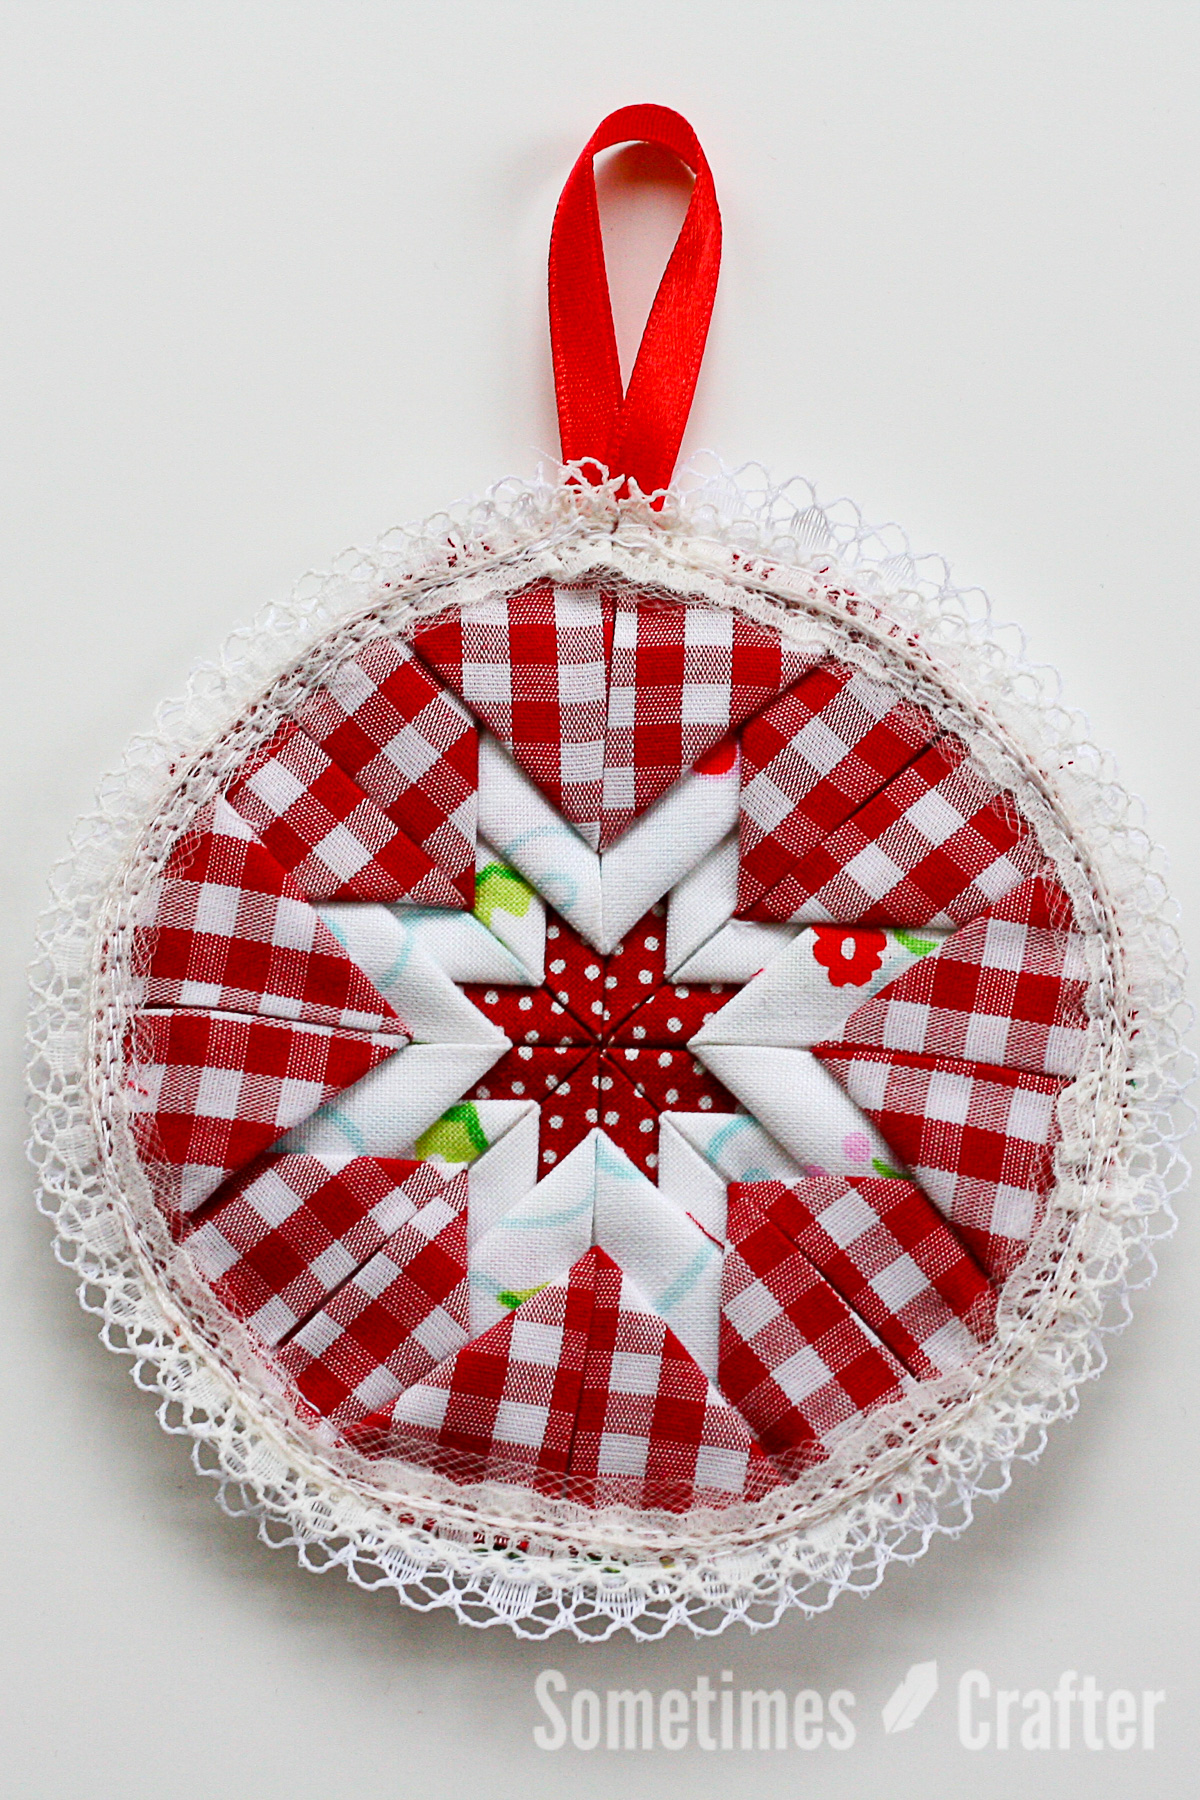 """""""Somerset Ornament Tutorial"""" is a Free Quilted Christmas Ornament Pattern designed by Christina from Sometimes Crafter"""